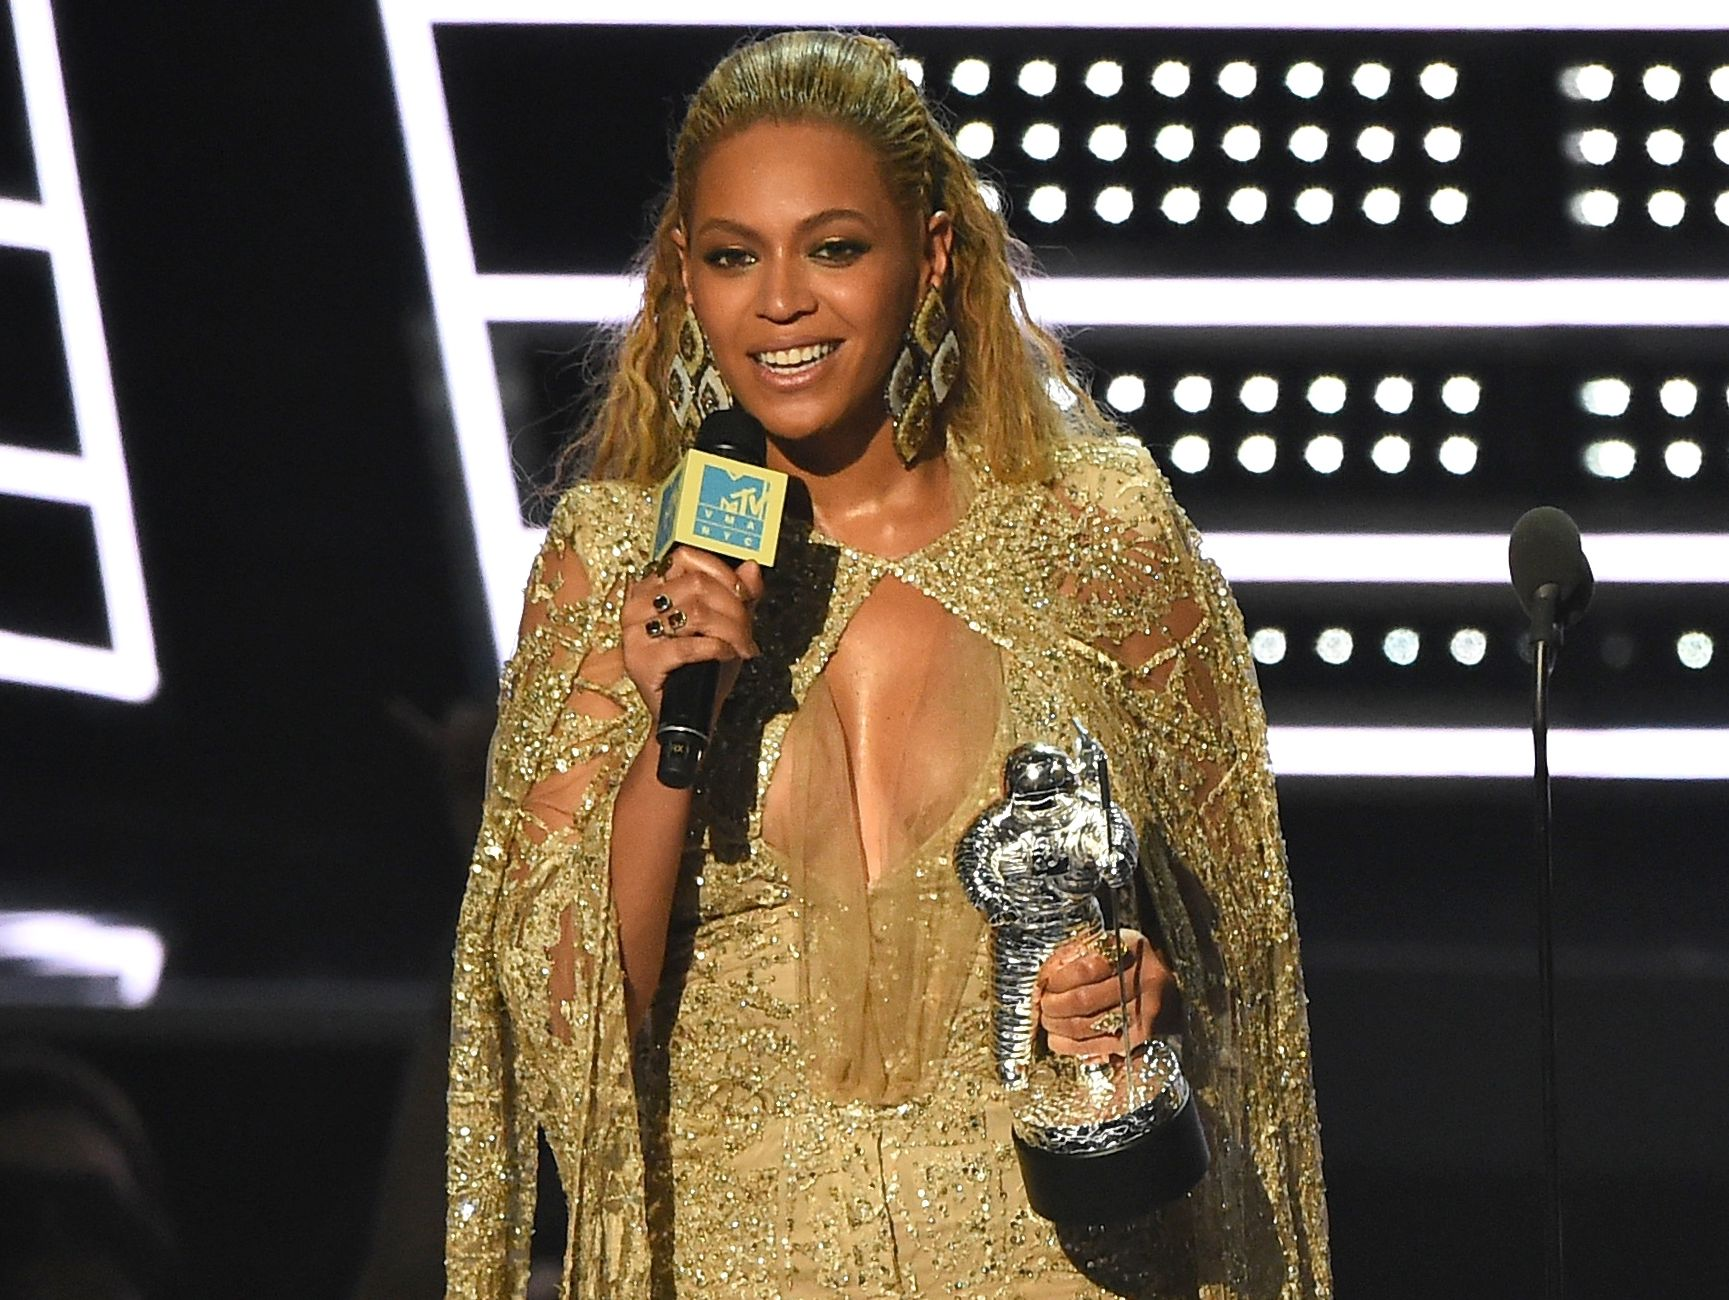 Beyonce accepts the award for best female video for 'Hold Up' at the MTV Video Music Awards.